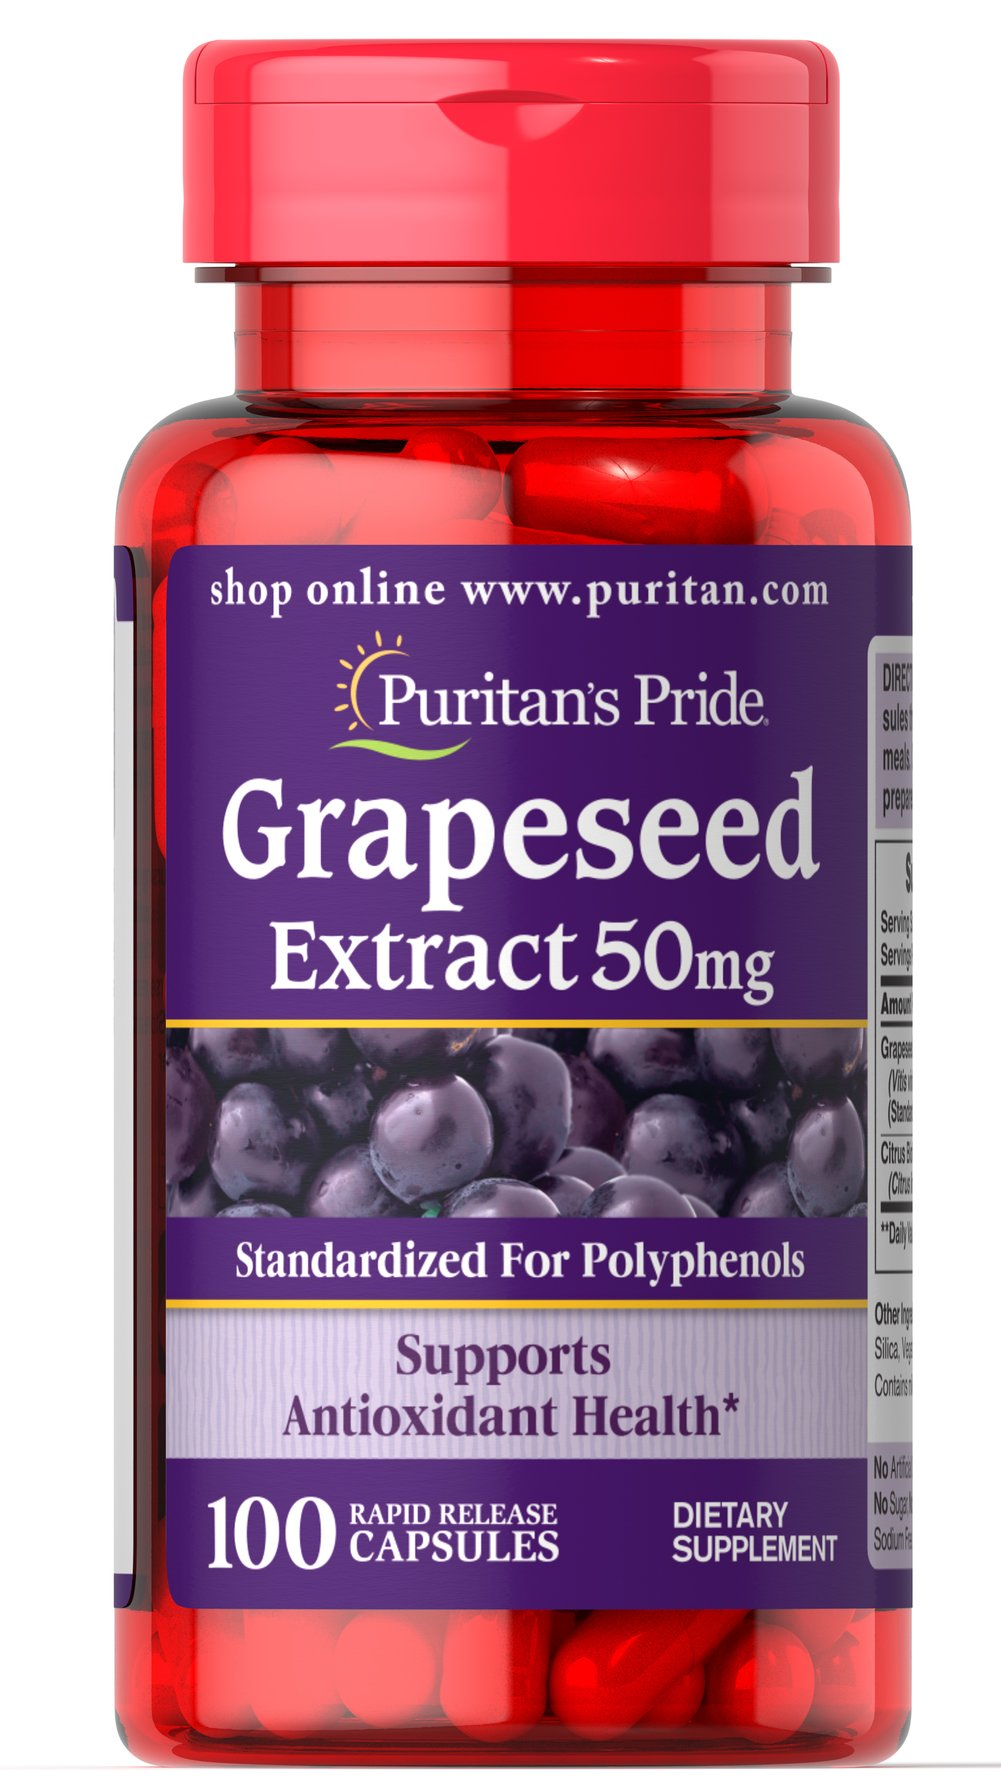 Grapeseed Extract 50 mg <p><b>Grapeseed Extract</b> helps maintain antioxidant health.** It contains oligomeric proanthocyanidins (OPCs), which are naturally occurring bioflavonoids. Free of yeast, wheat, sugar, preservatives, soy,  gluten, fish, artificial color, artificial flavor and sodium (less than 5 mg per serving). Standardized to contain 50% Polyphenols. Adults can take one capsule one or two times daily.</p> 100 Capsules 50 mg $9.99